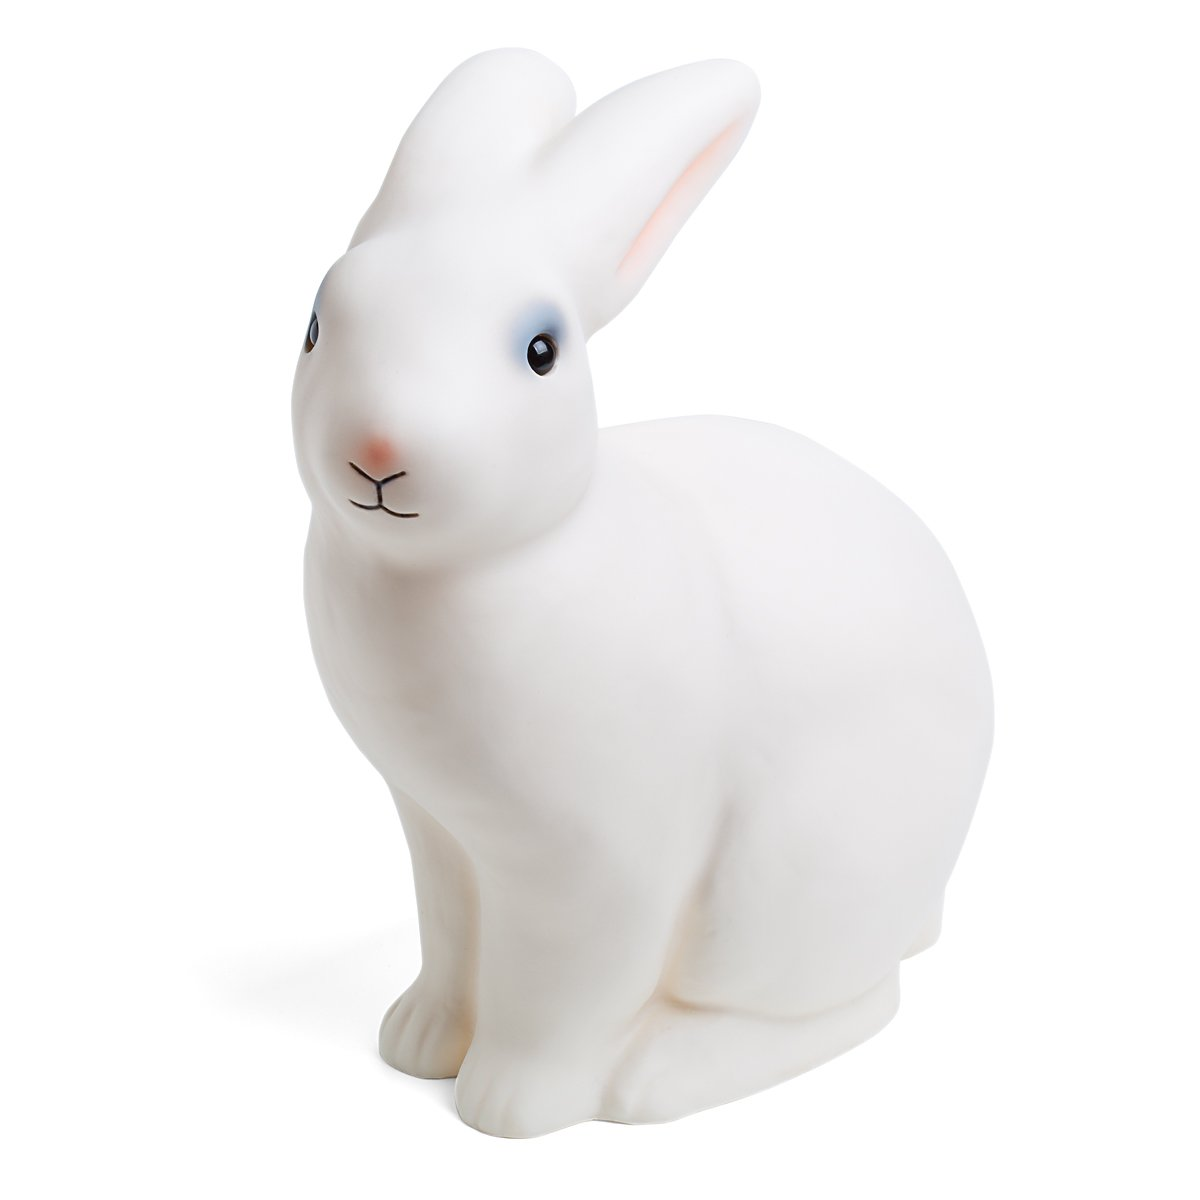 stefano giovannoni led lamp outdoor turnoff rabbit qeeboo by